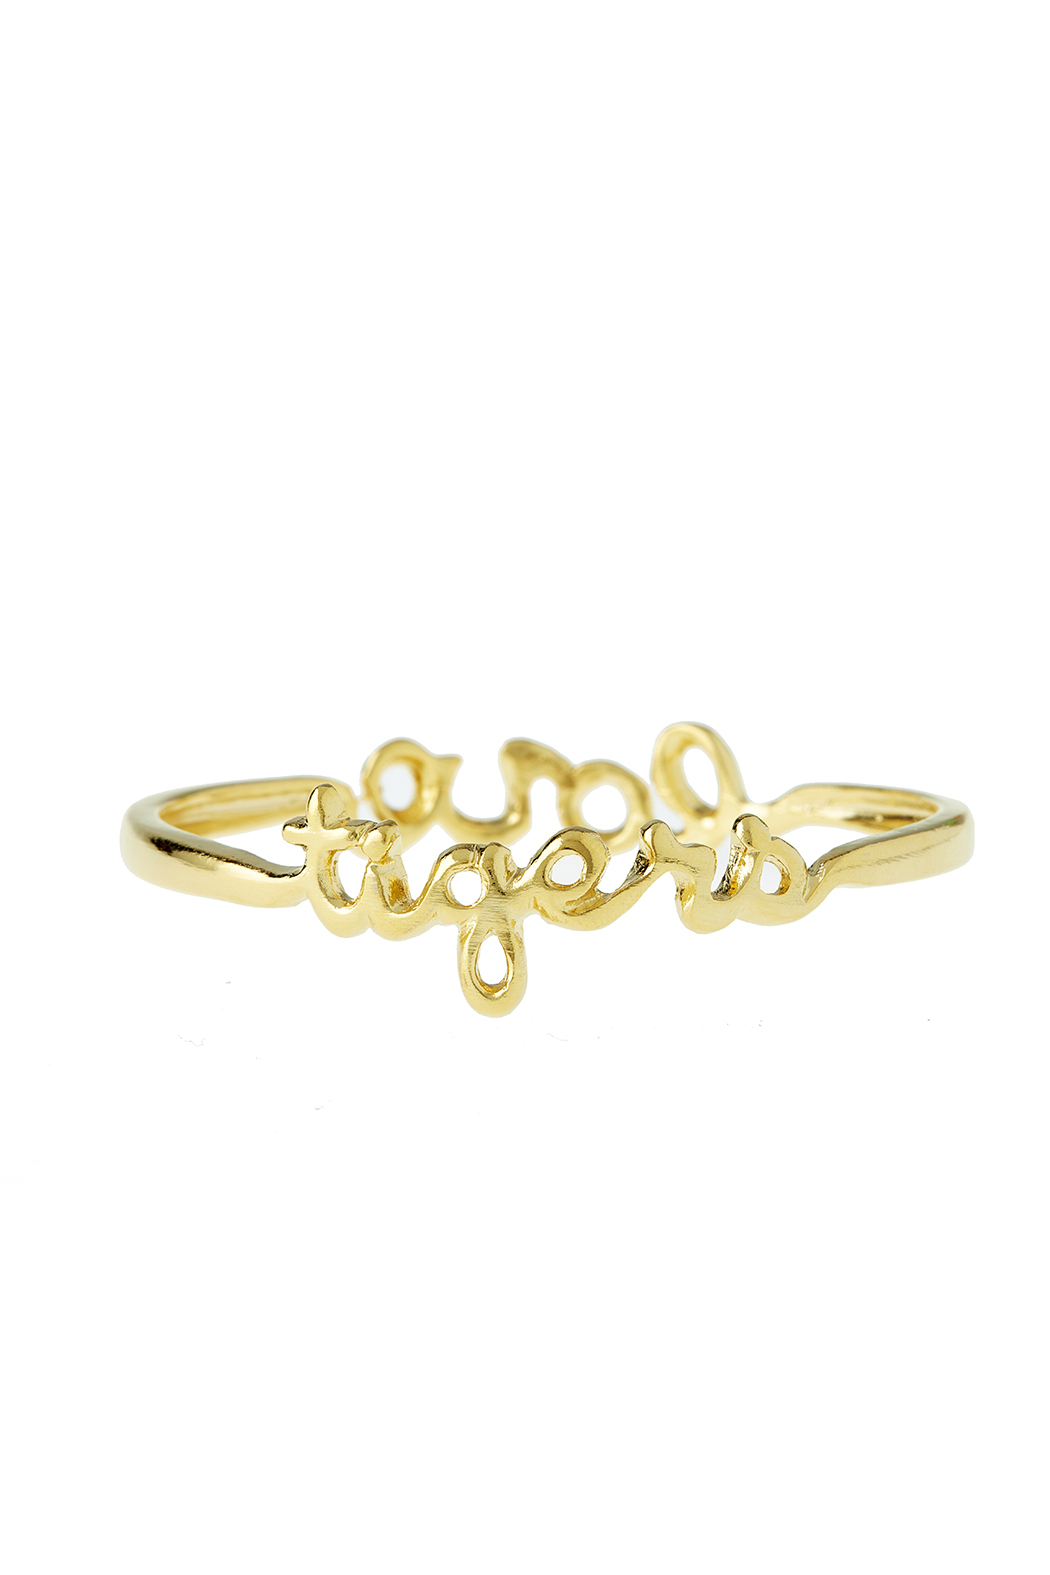 Sarah Ott Gold Tiger Love Bangle - Main Image